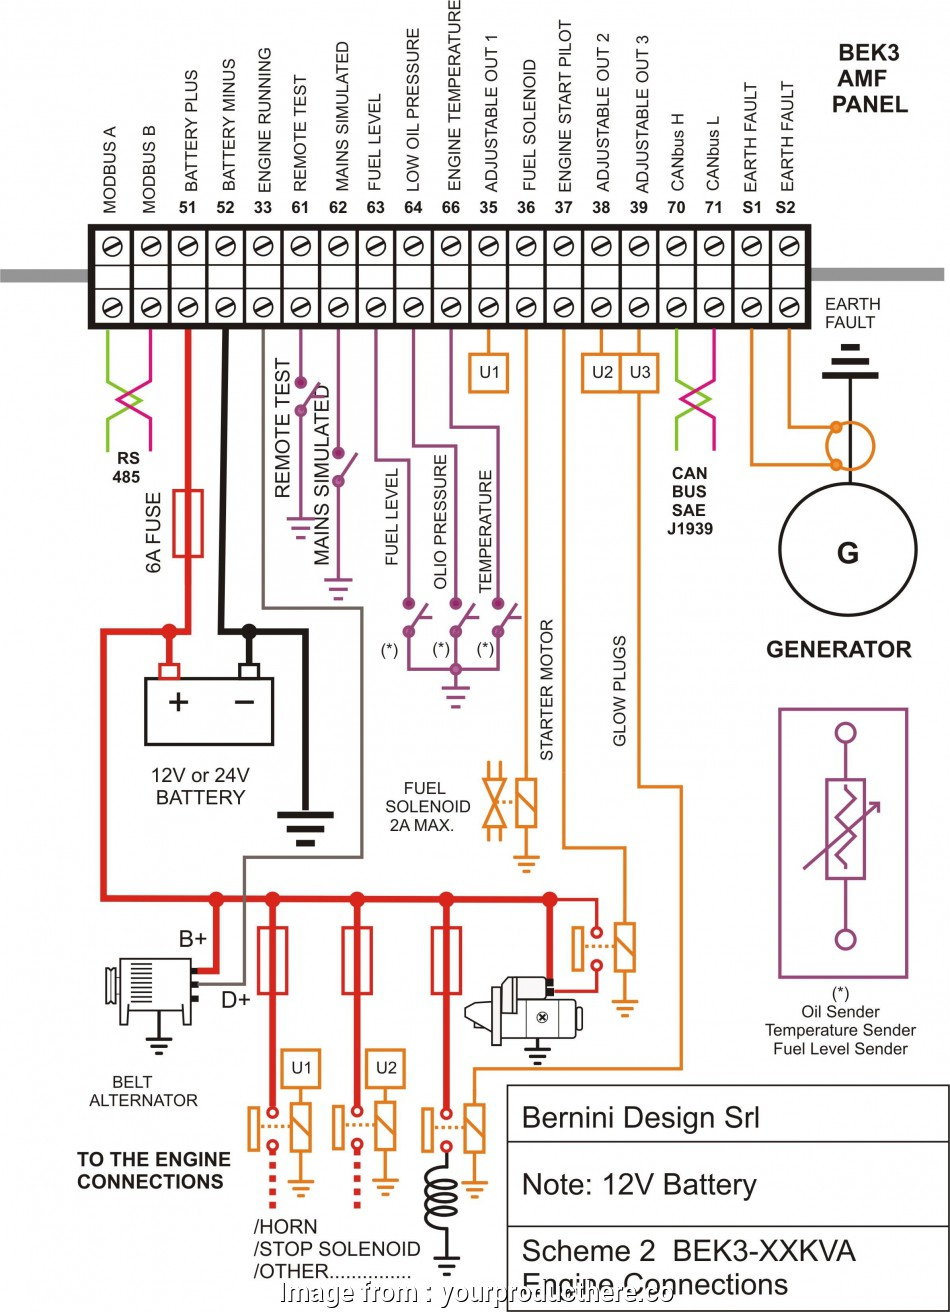 electrical control panel wiring+video Typical Generator Wiring Diagram, Sel Generator Control Panel Wiring Diagram Engine Connections 18 Fantastic Electrical Control Panel Wiring+Video Pictures